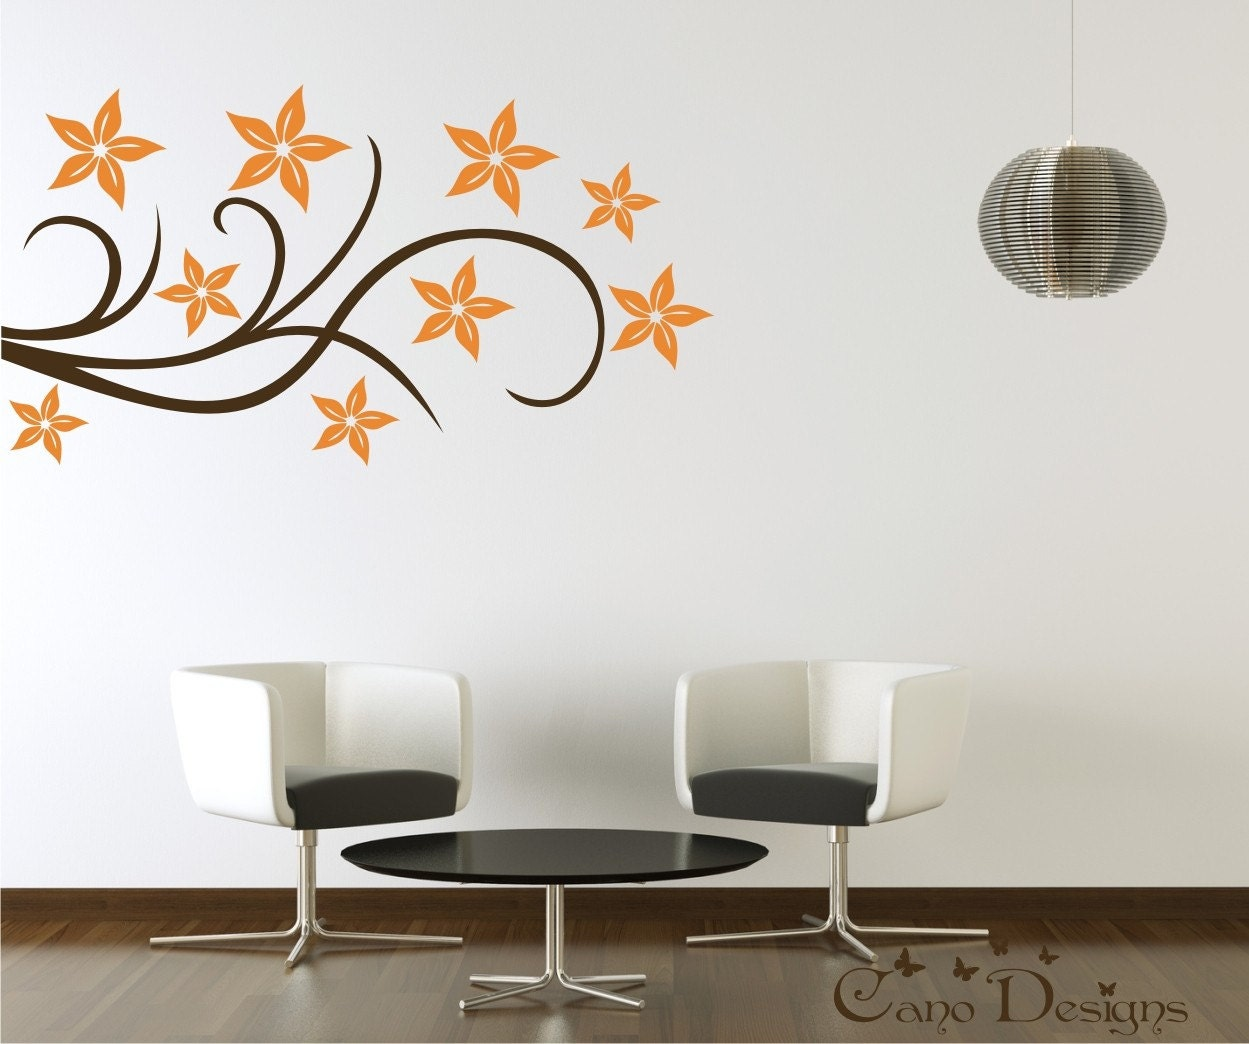 Floral Design Vinyl Decal Wall Decals Stickers by CanoDesigns